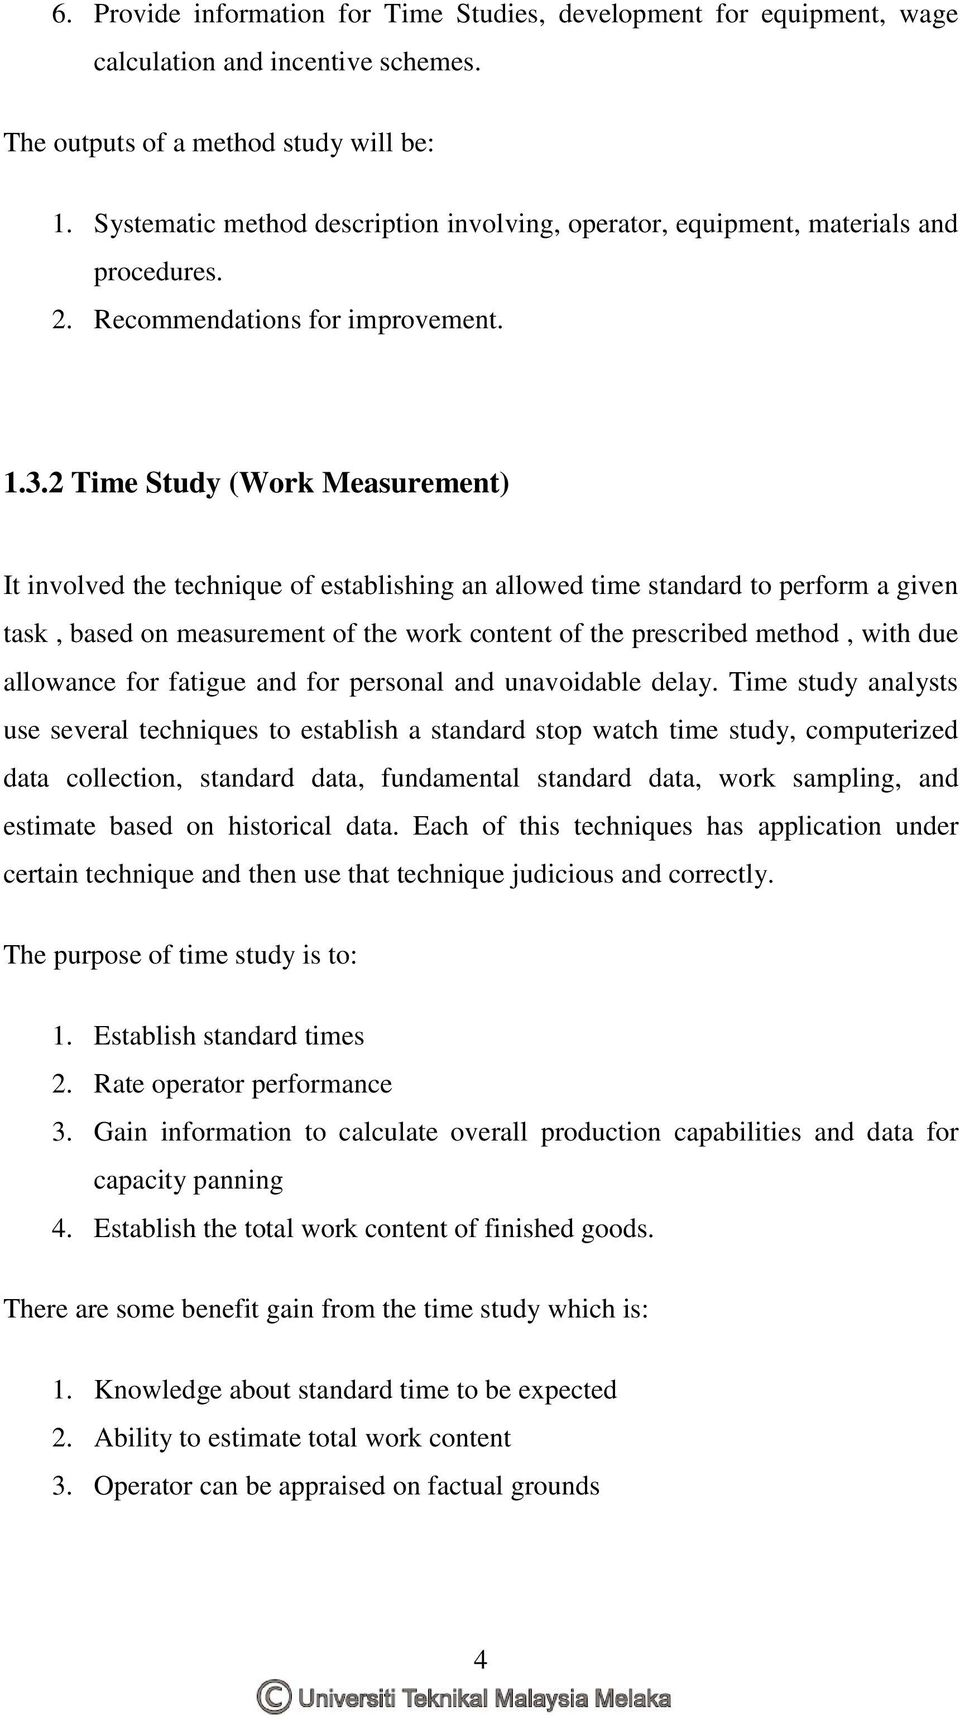 2 Time Study (Work Measurement) It involved the technique of establishing an allowed time standard to perform a given task, based on measurement of the work content of the prescribed method, with due